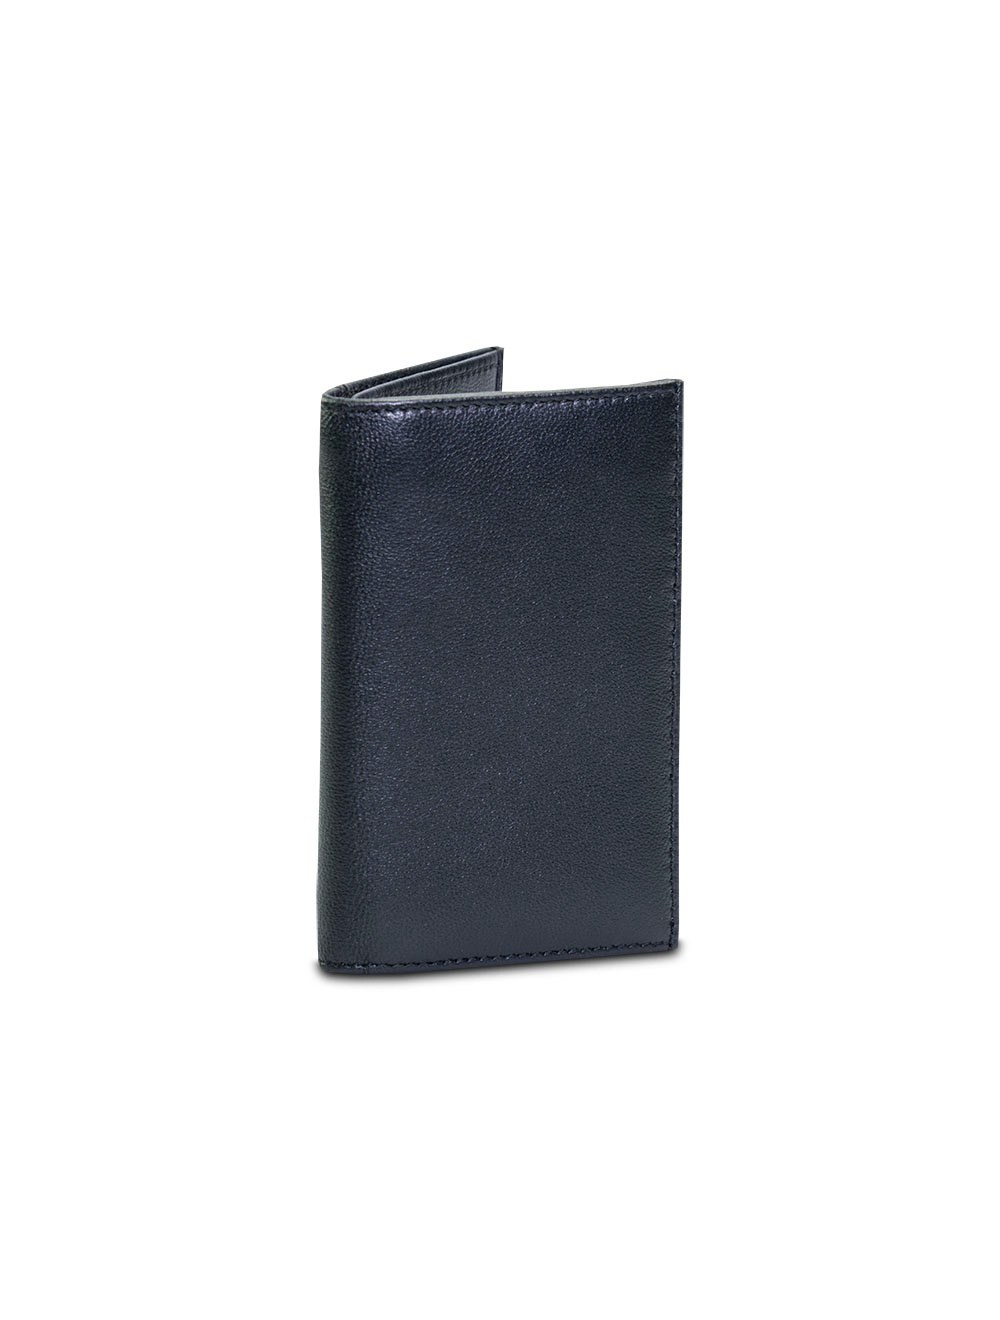 Double Business Card And Credit Card Holder - Black